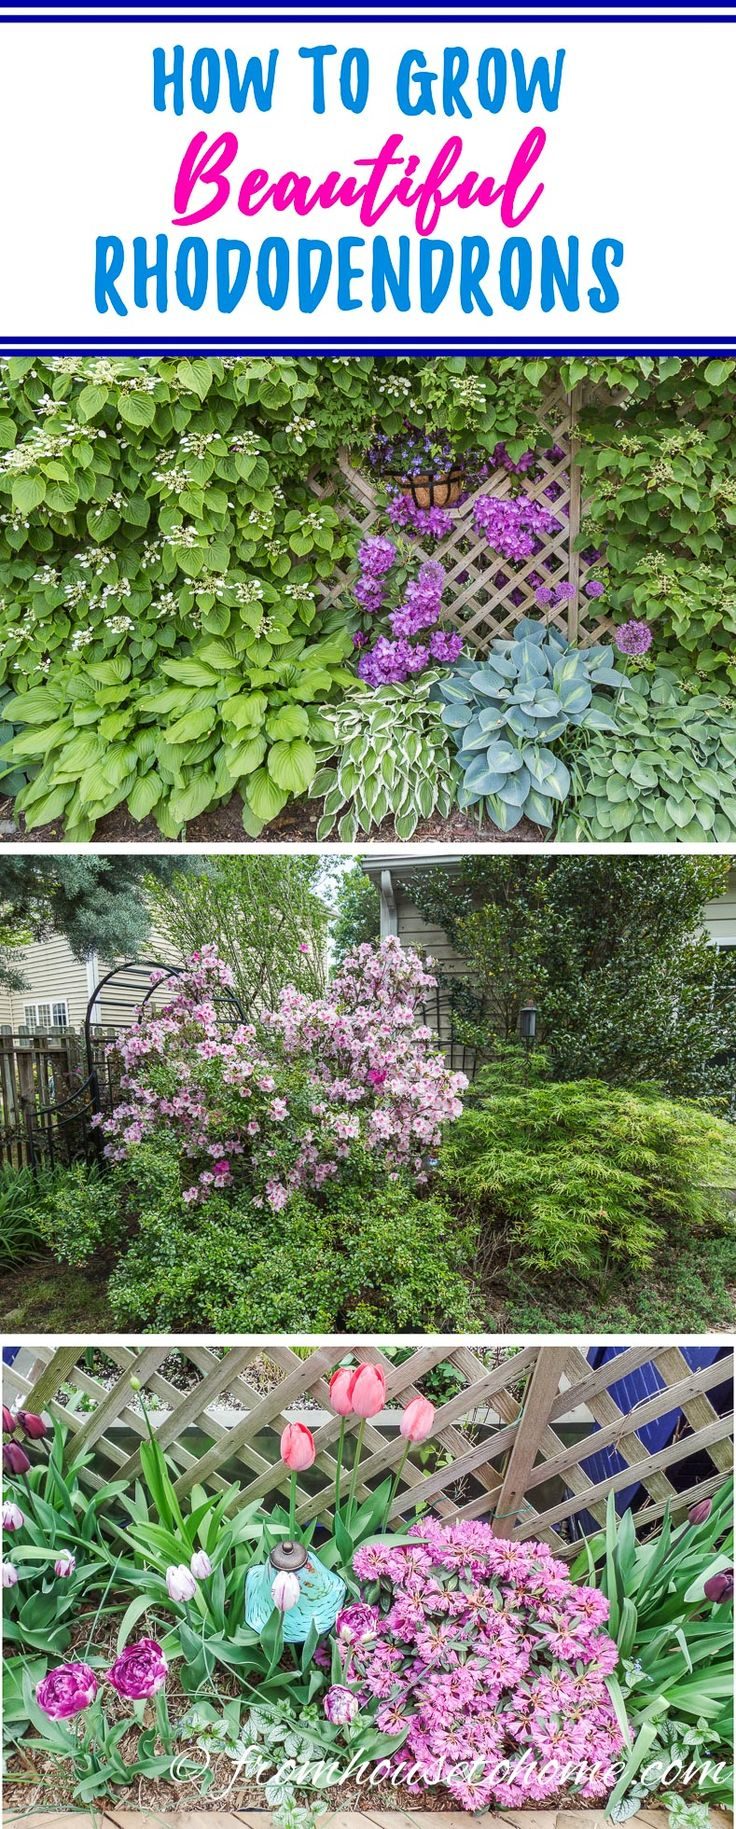 Best 25 azaleas landscaping ideas on pinterest flowers for How to care for rhododendrons after blooming